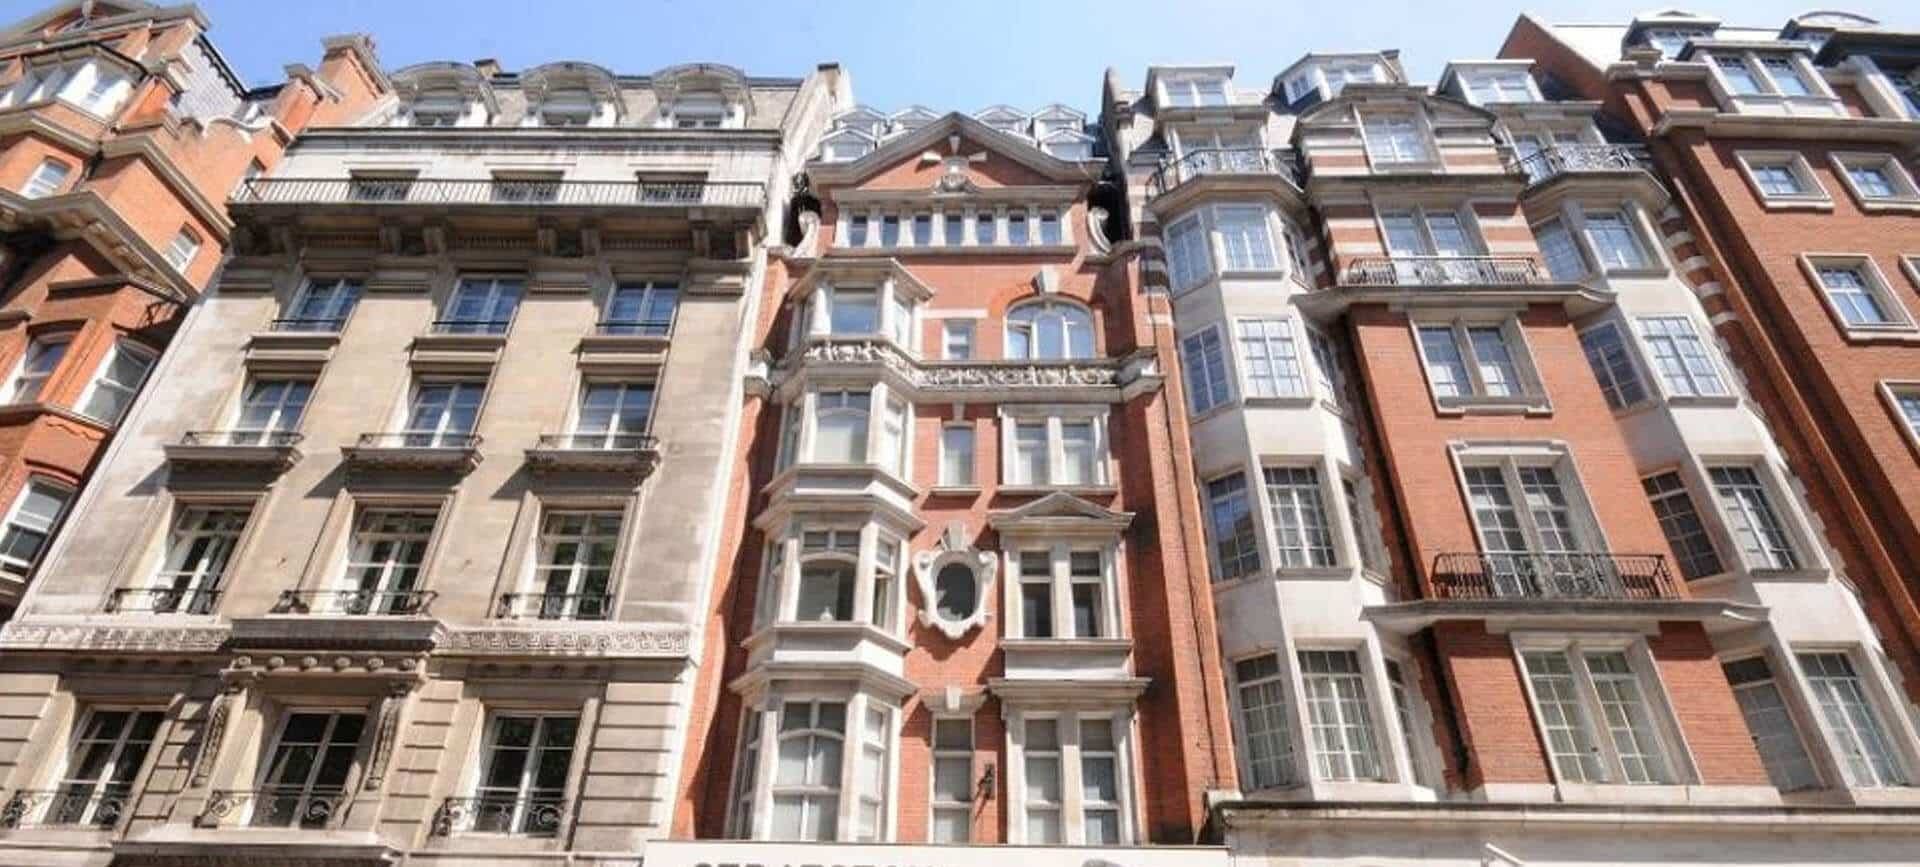 The £1m Mayfair apartment